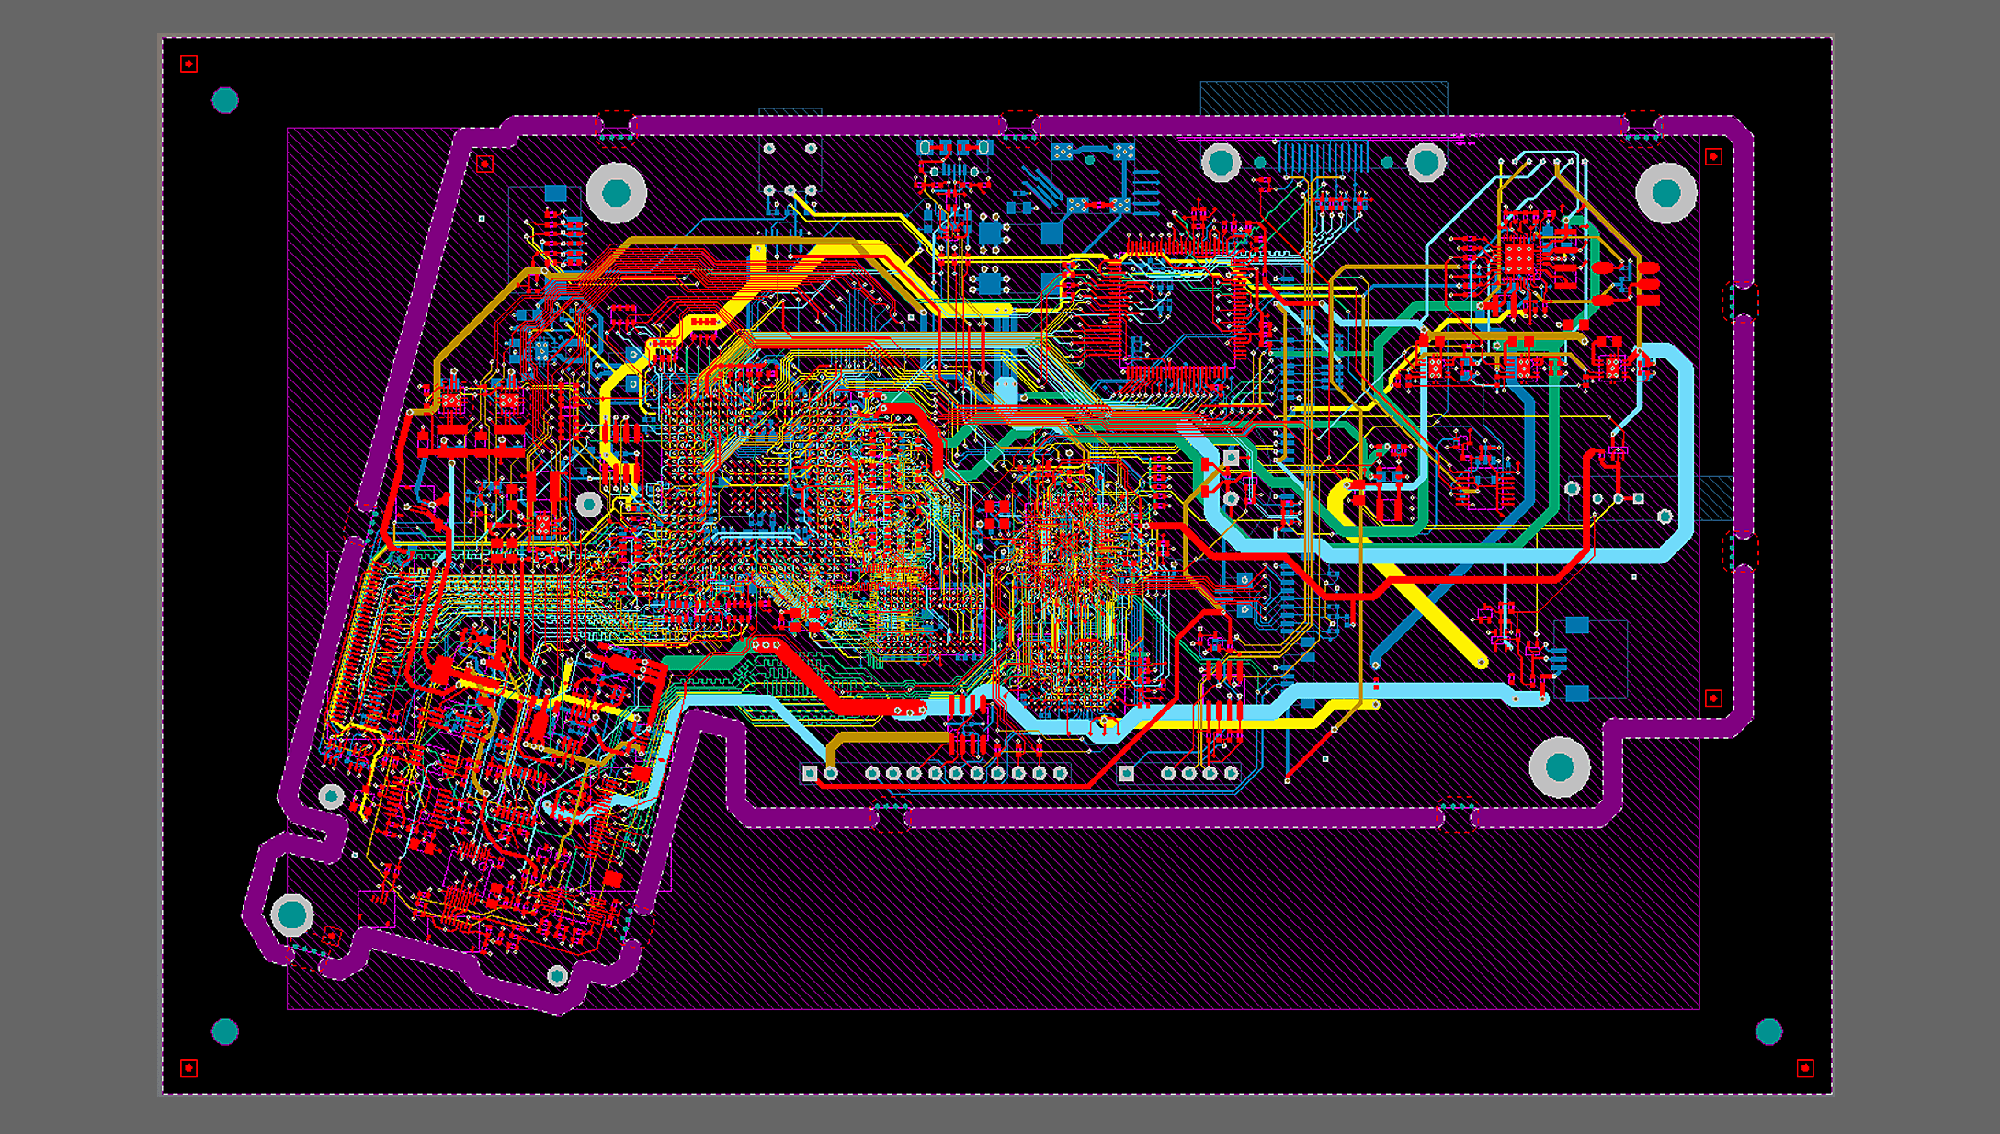 Altium Design PCB Layout